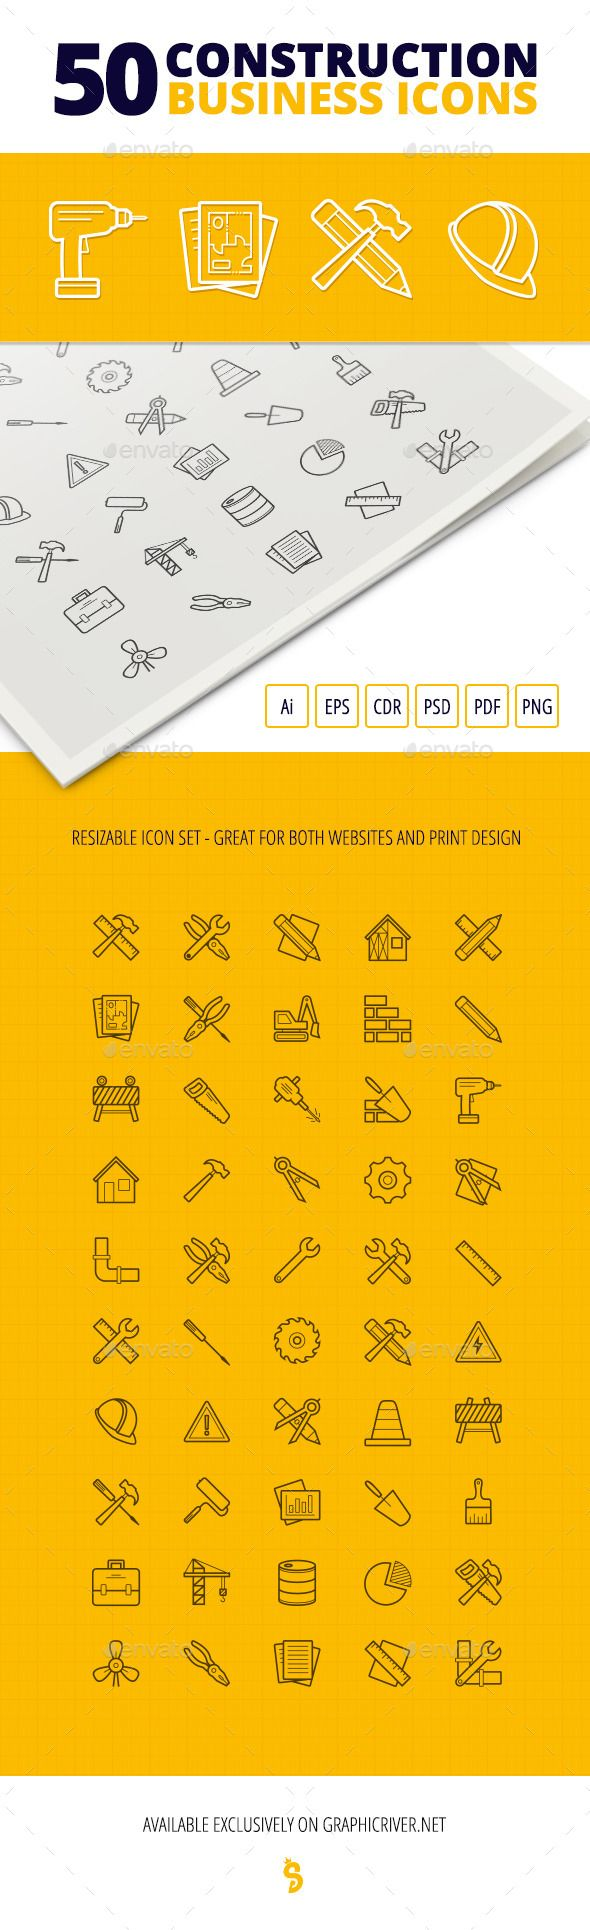 50 construction business icons construction business icons and 50 construction business icons reheart Choice Image